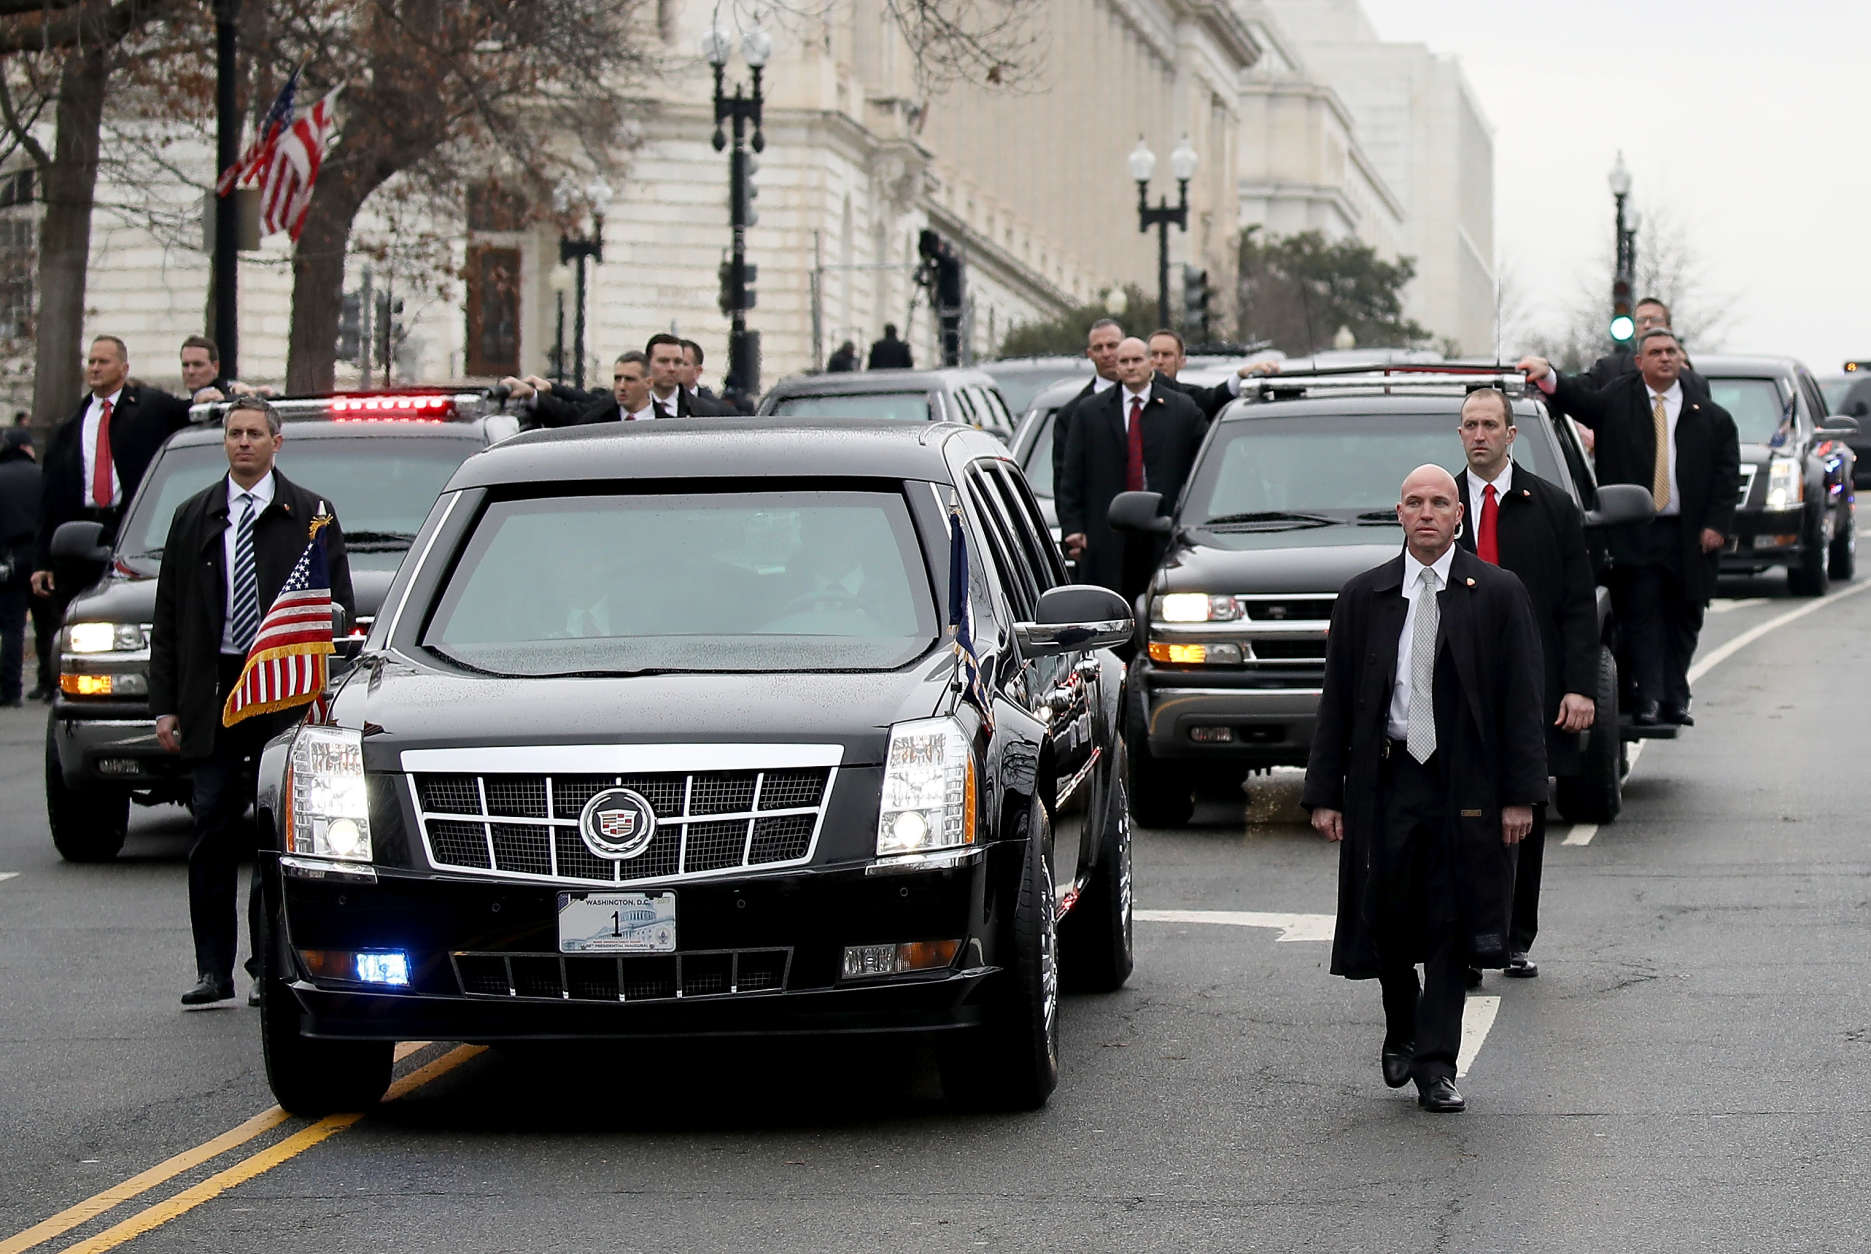 WASHINGTON, DC - JANUARY 20:  The presidential limousine carrying U.S. President Donald Trump and first lady Melania Trump turns onto Pennsylvania Avenue during the Inaugural Parade on January 20, 2017 in Washington, DC. Donald J. Trump was sworn in today as the 45th president of the United States.  (Photo by Drew Angerer/Getty Images)